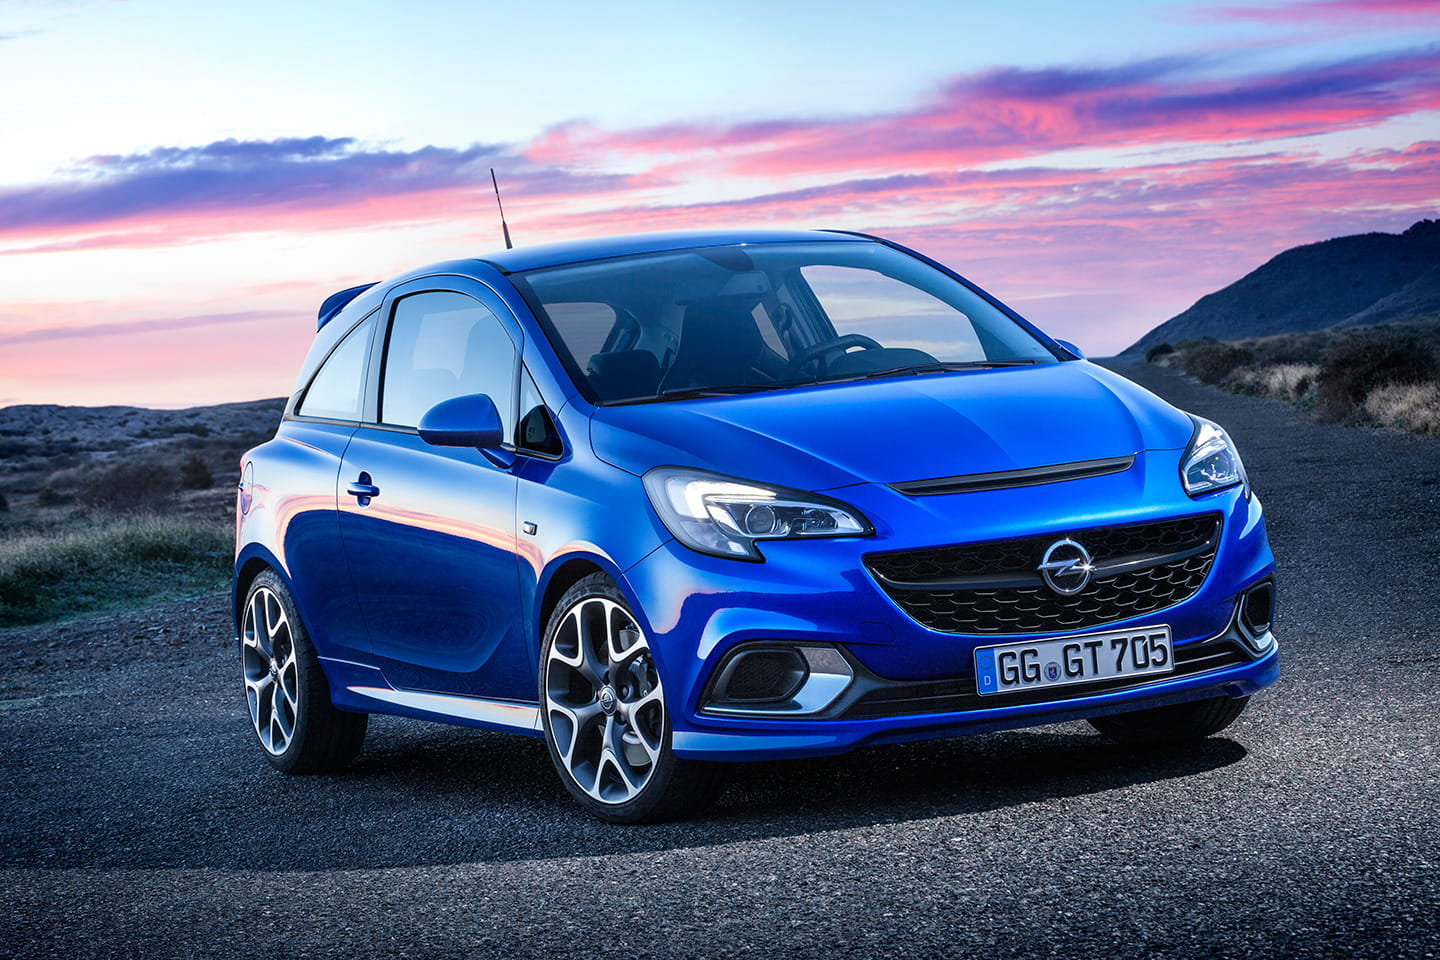 opel corsa opc 2015 el nuevo deportivo de bolsillo alem n diariomotor. Black Bedroom Furniture Sets. Home Design Ideas